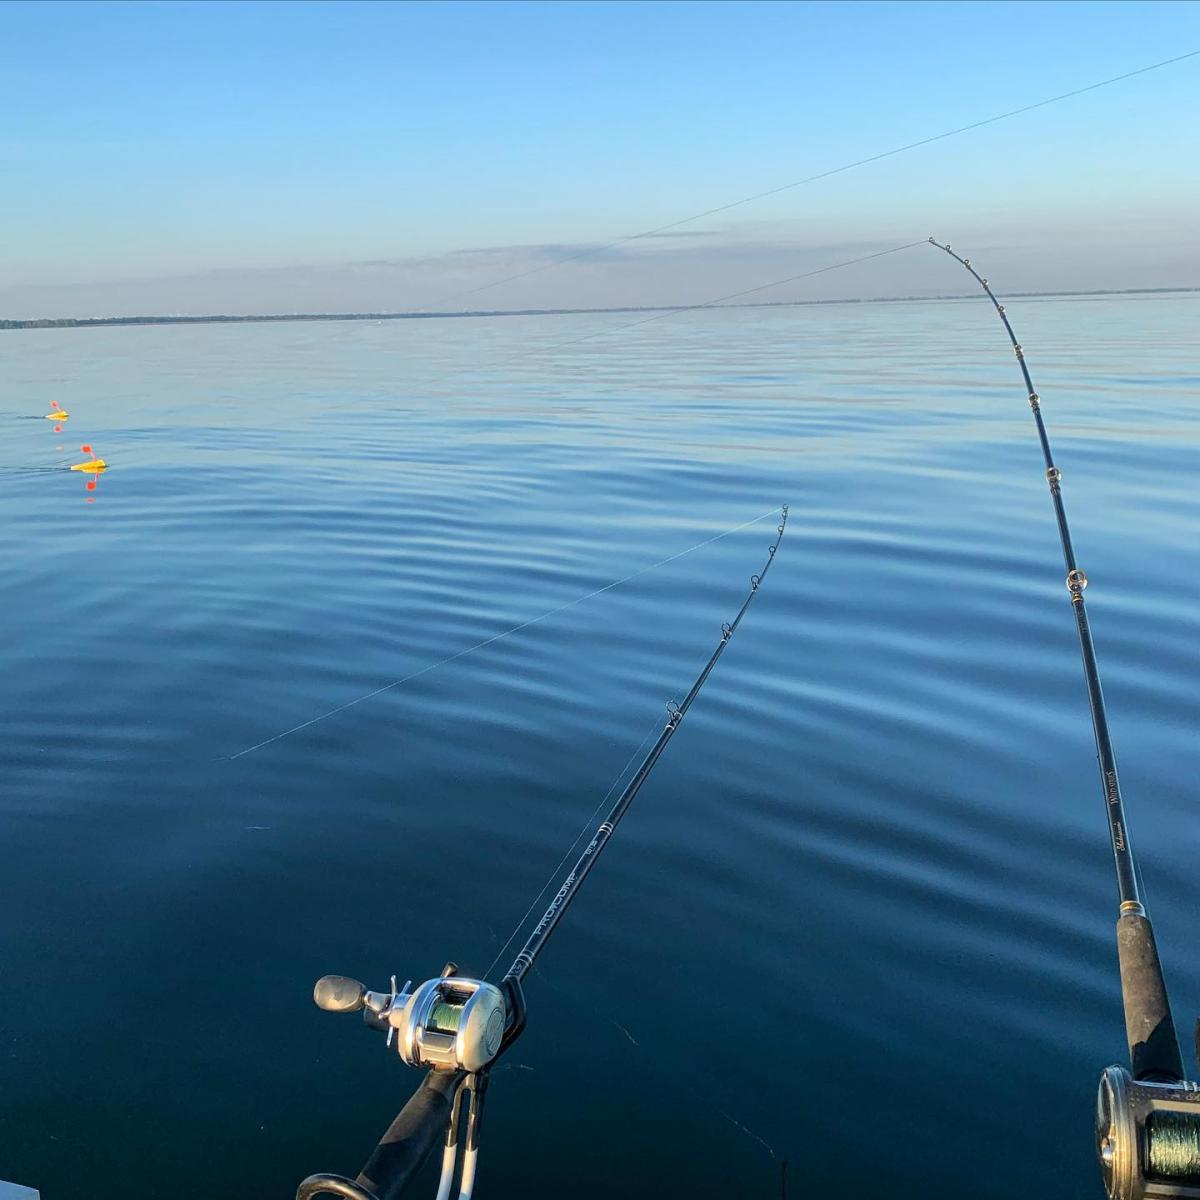 Fishing poles cast out on Lake Huron's Saginaw Bay